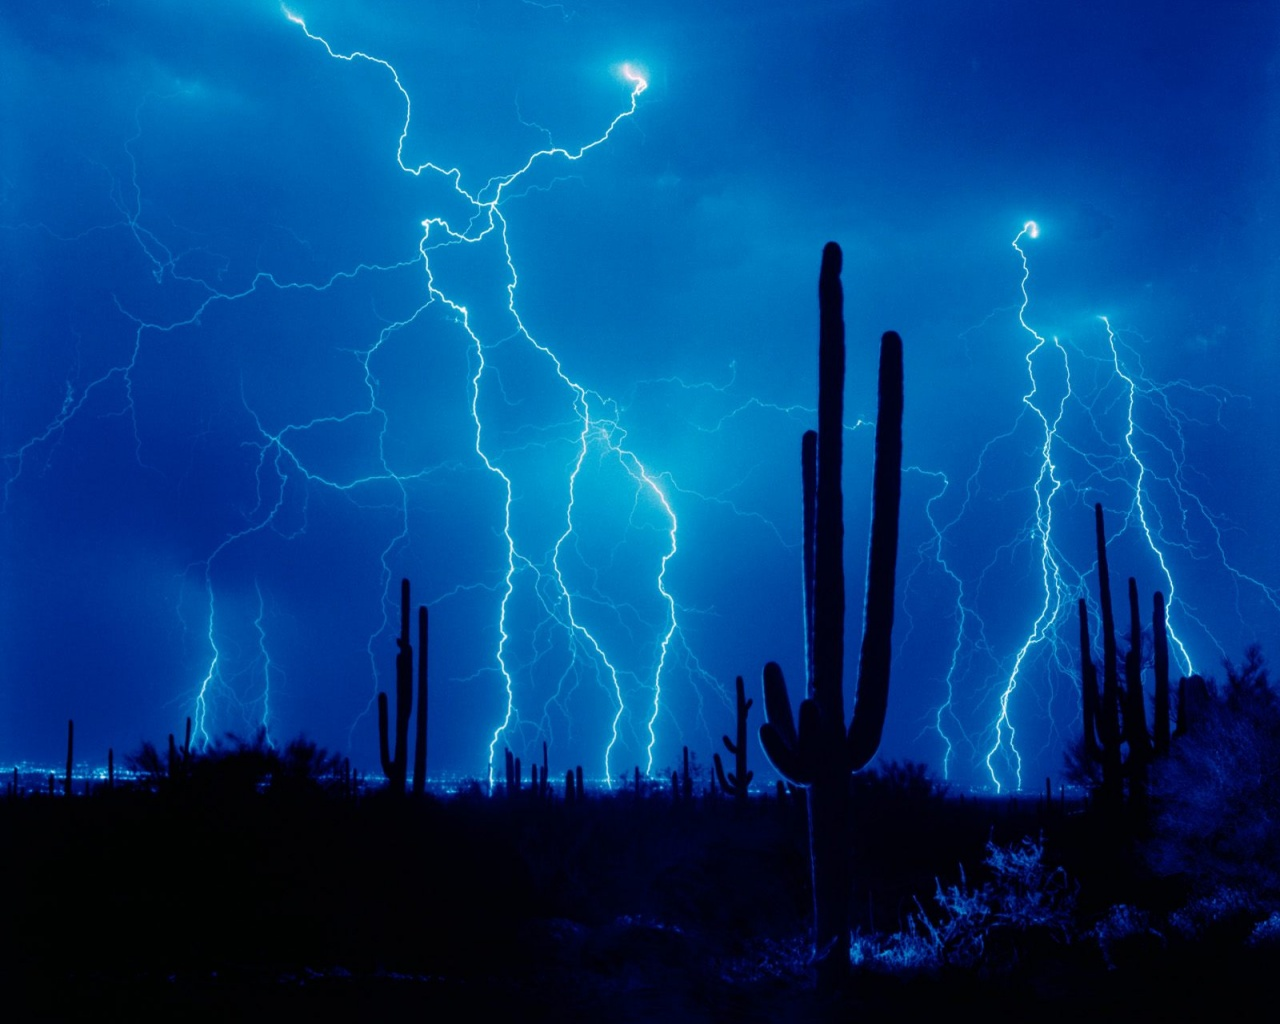 1280x1024 Lightning and cactus desktop wallpapers and stock photos